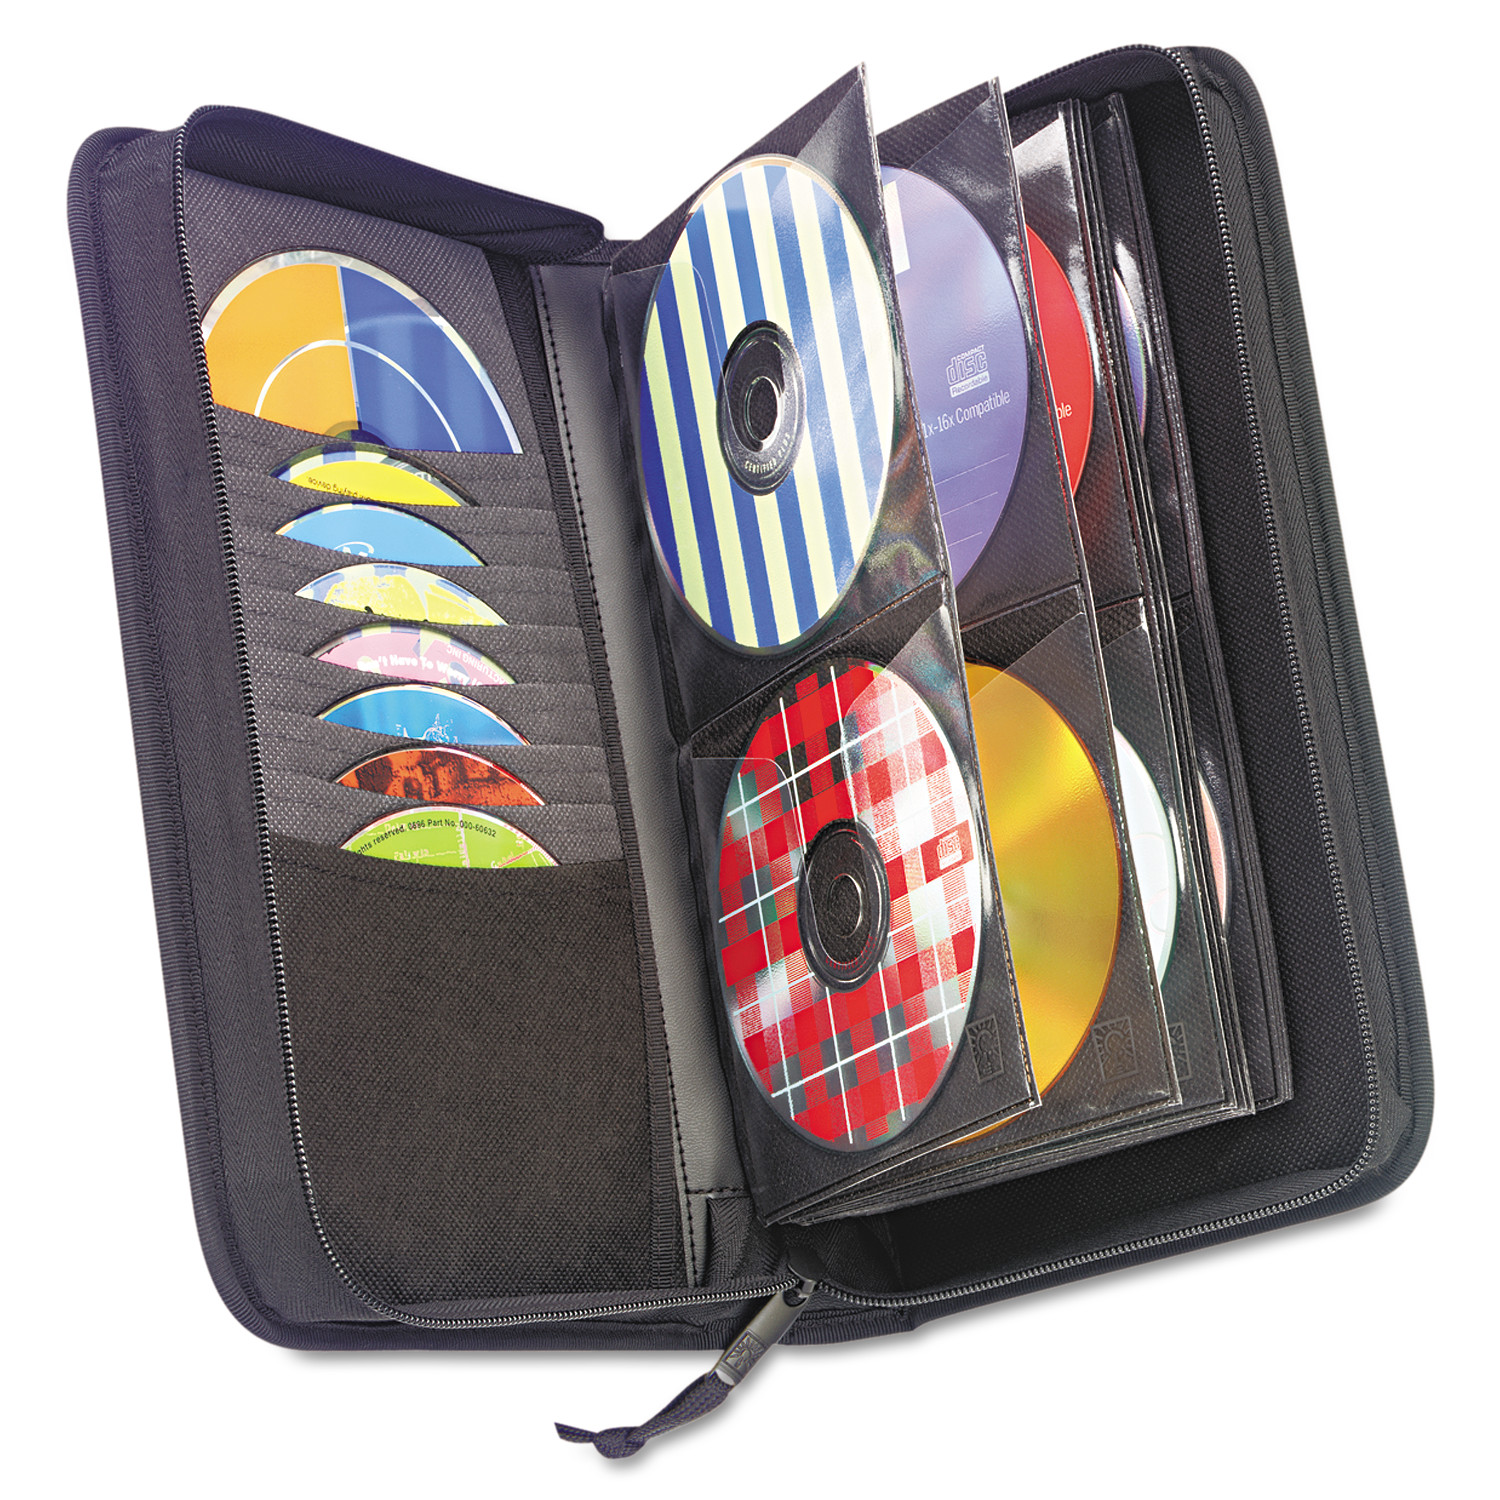 Case Logic CD/DVD Wallet, Holds 72 Discs, Black